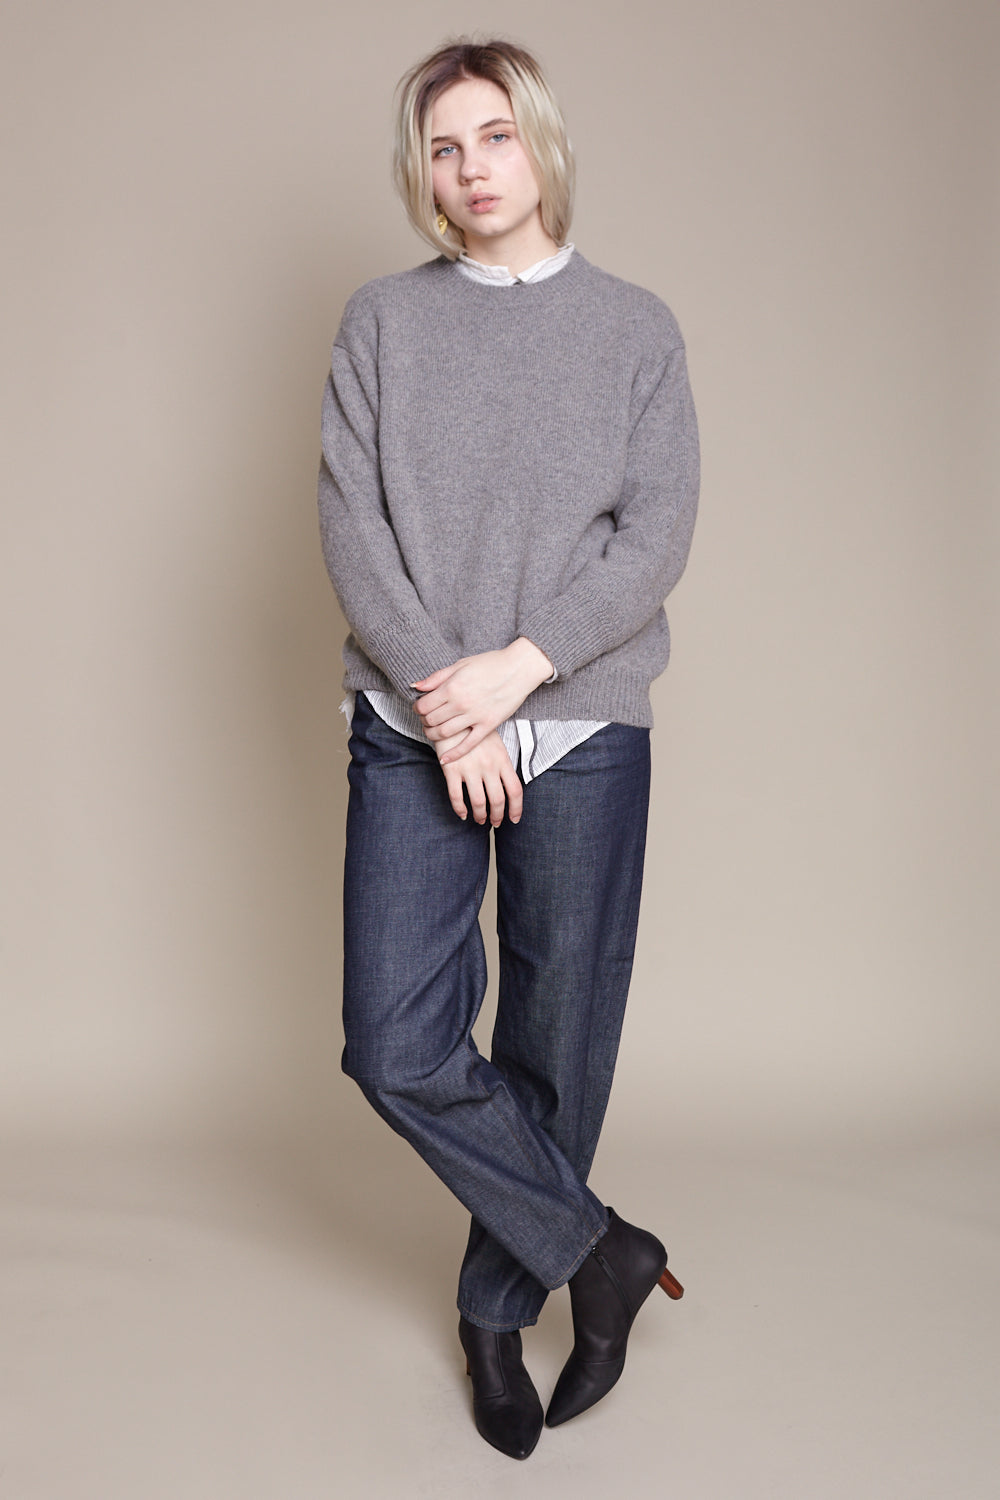 pas de calais Crew Neck Pullover in Grey - Vert & Vogue